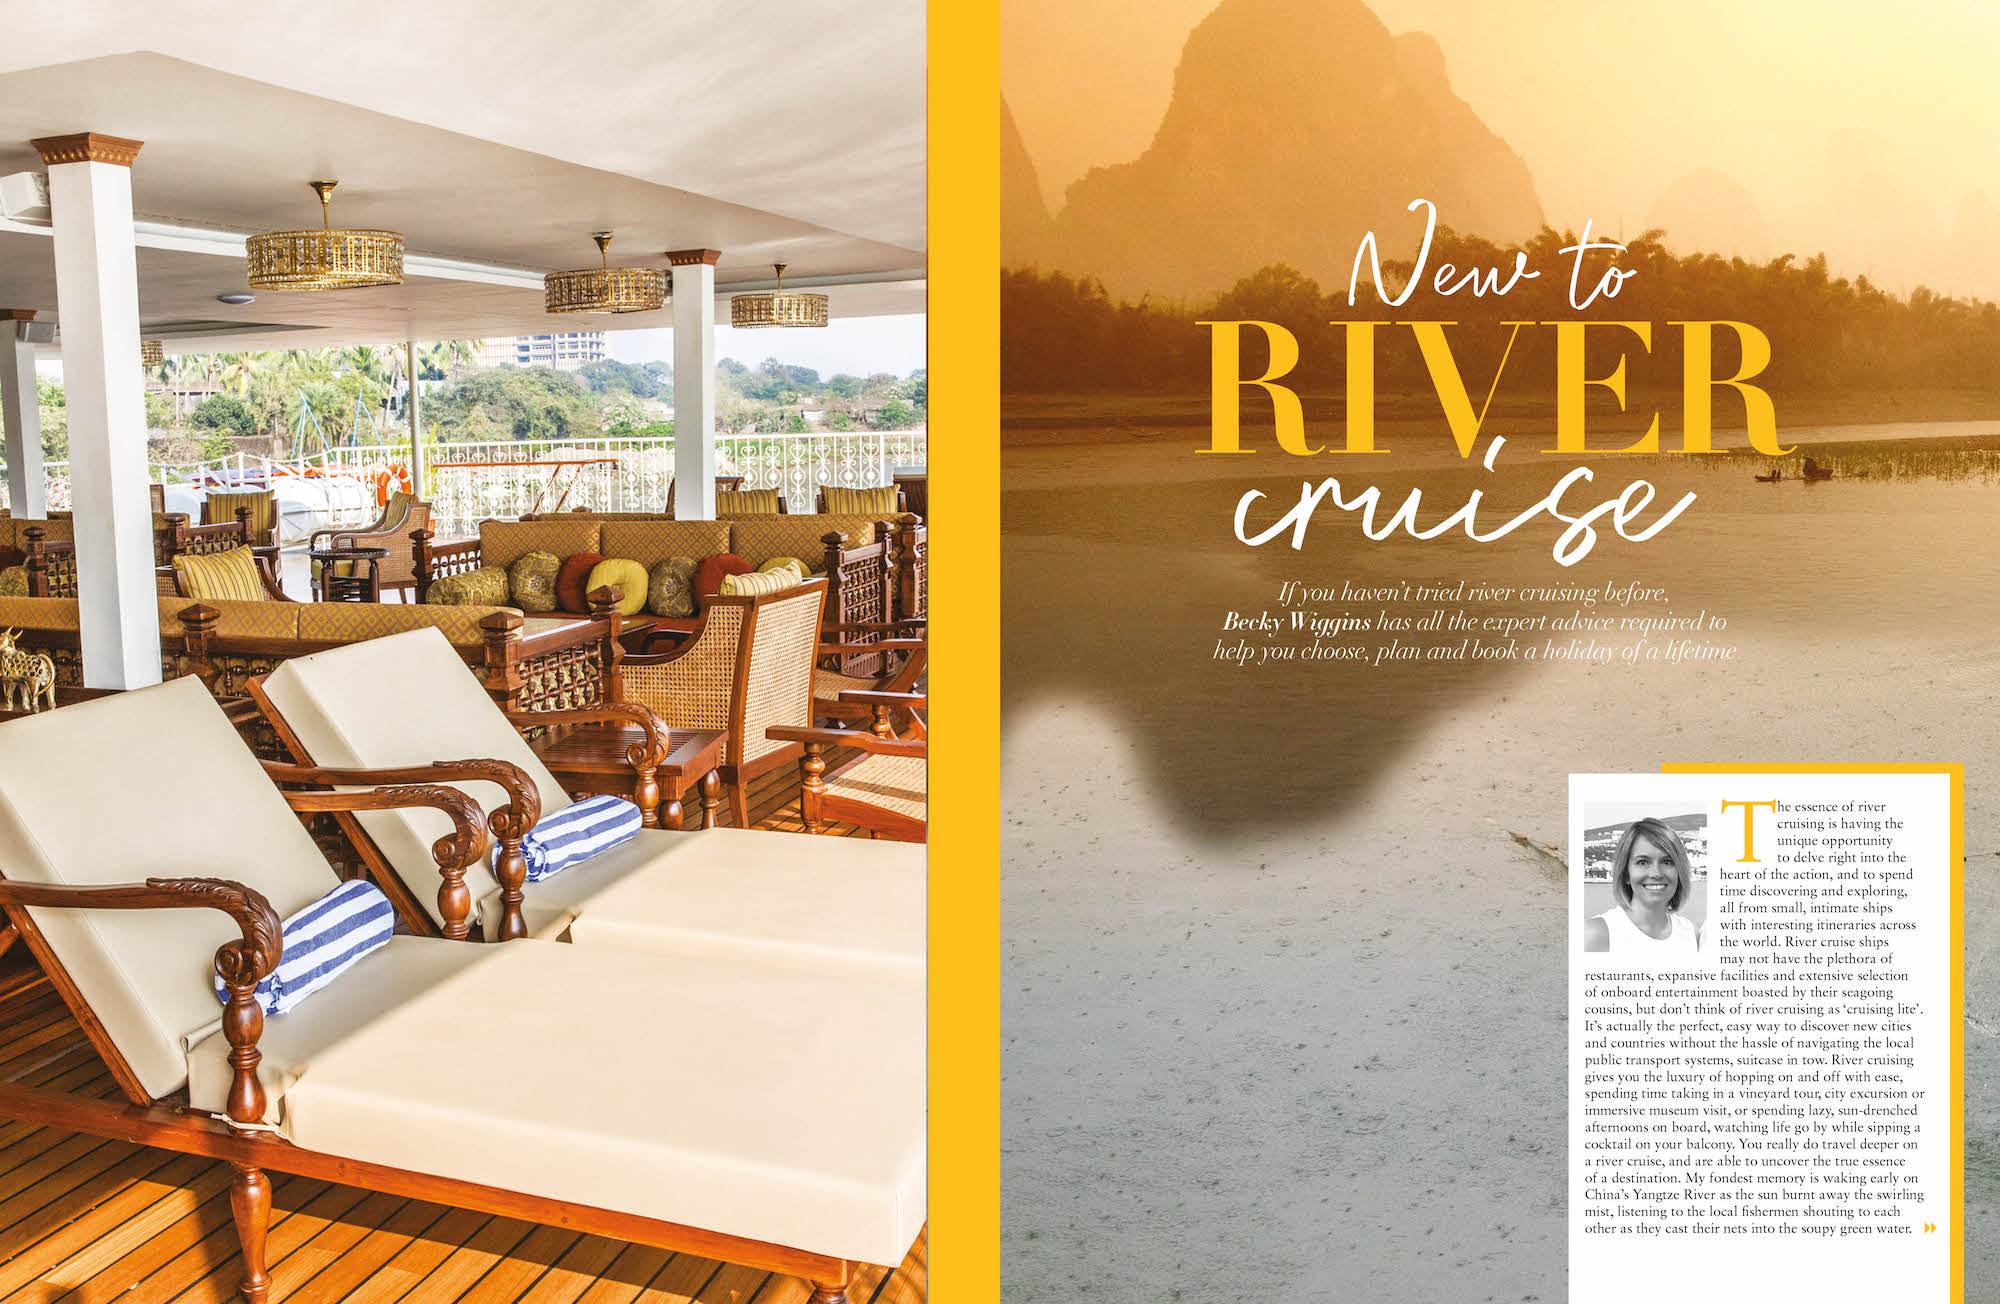 New to River Cruising in cruise International June/July 2019